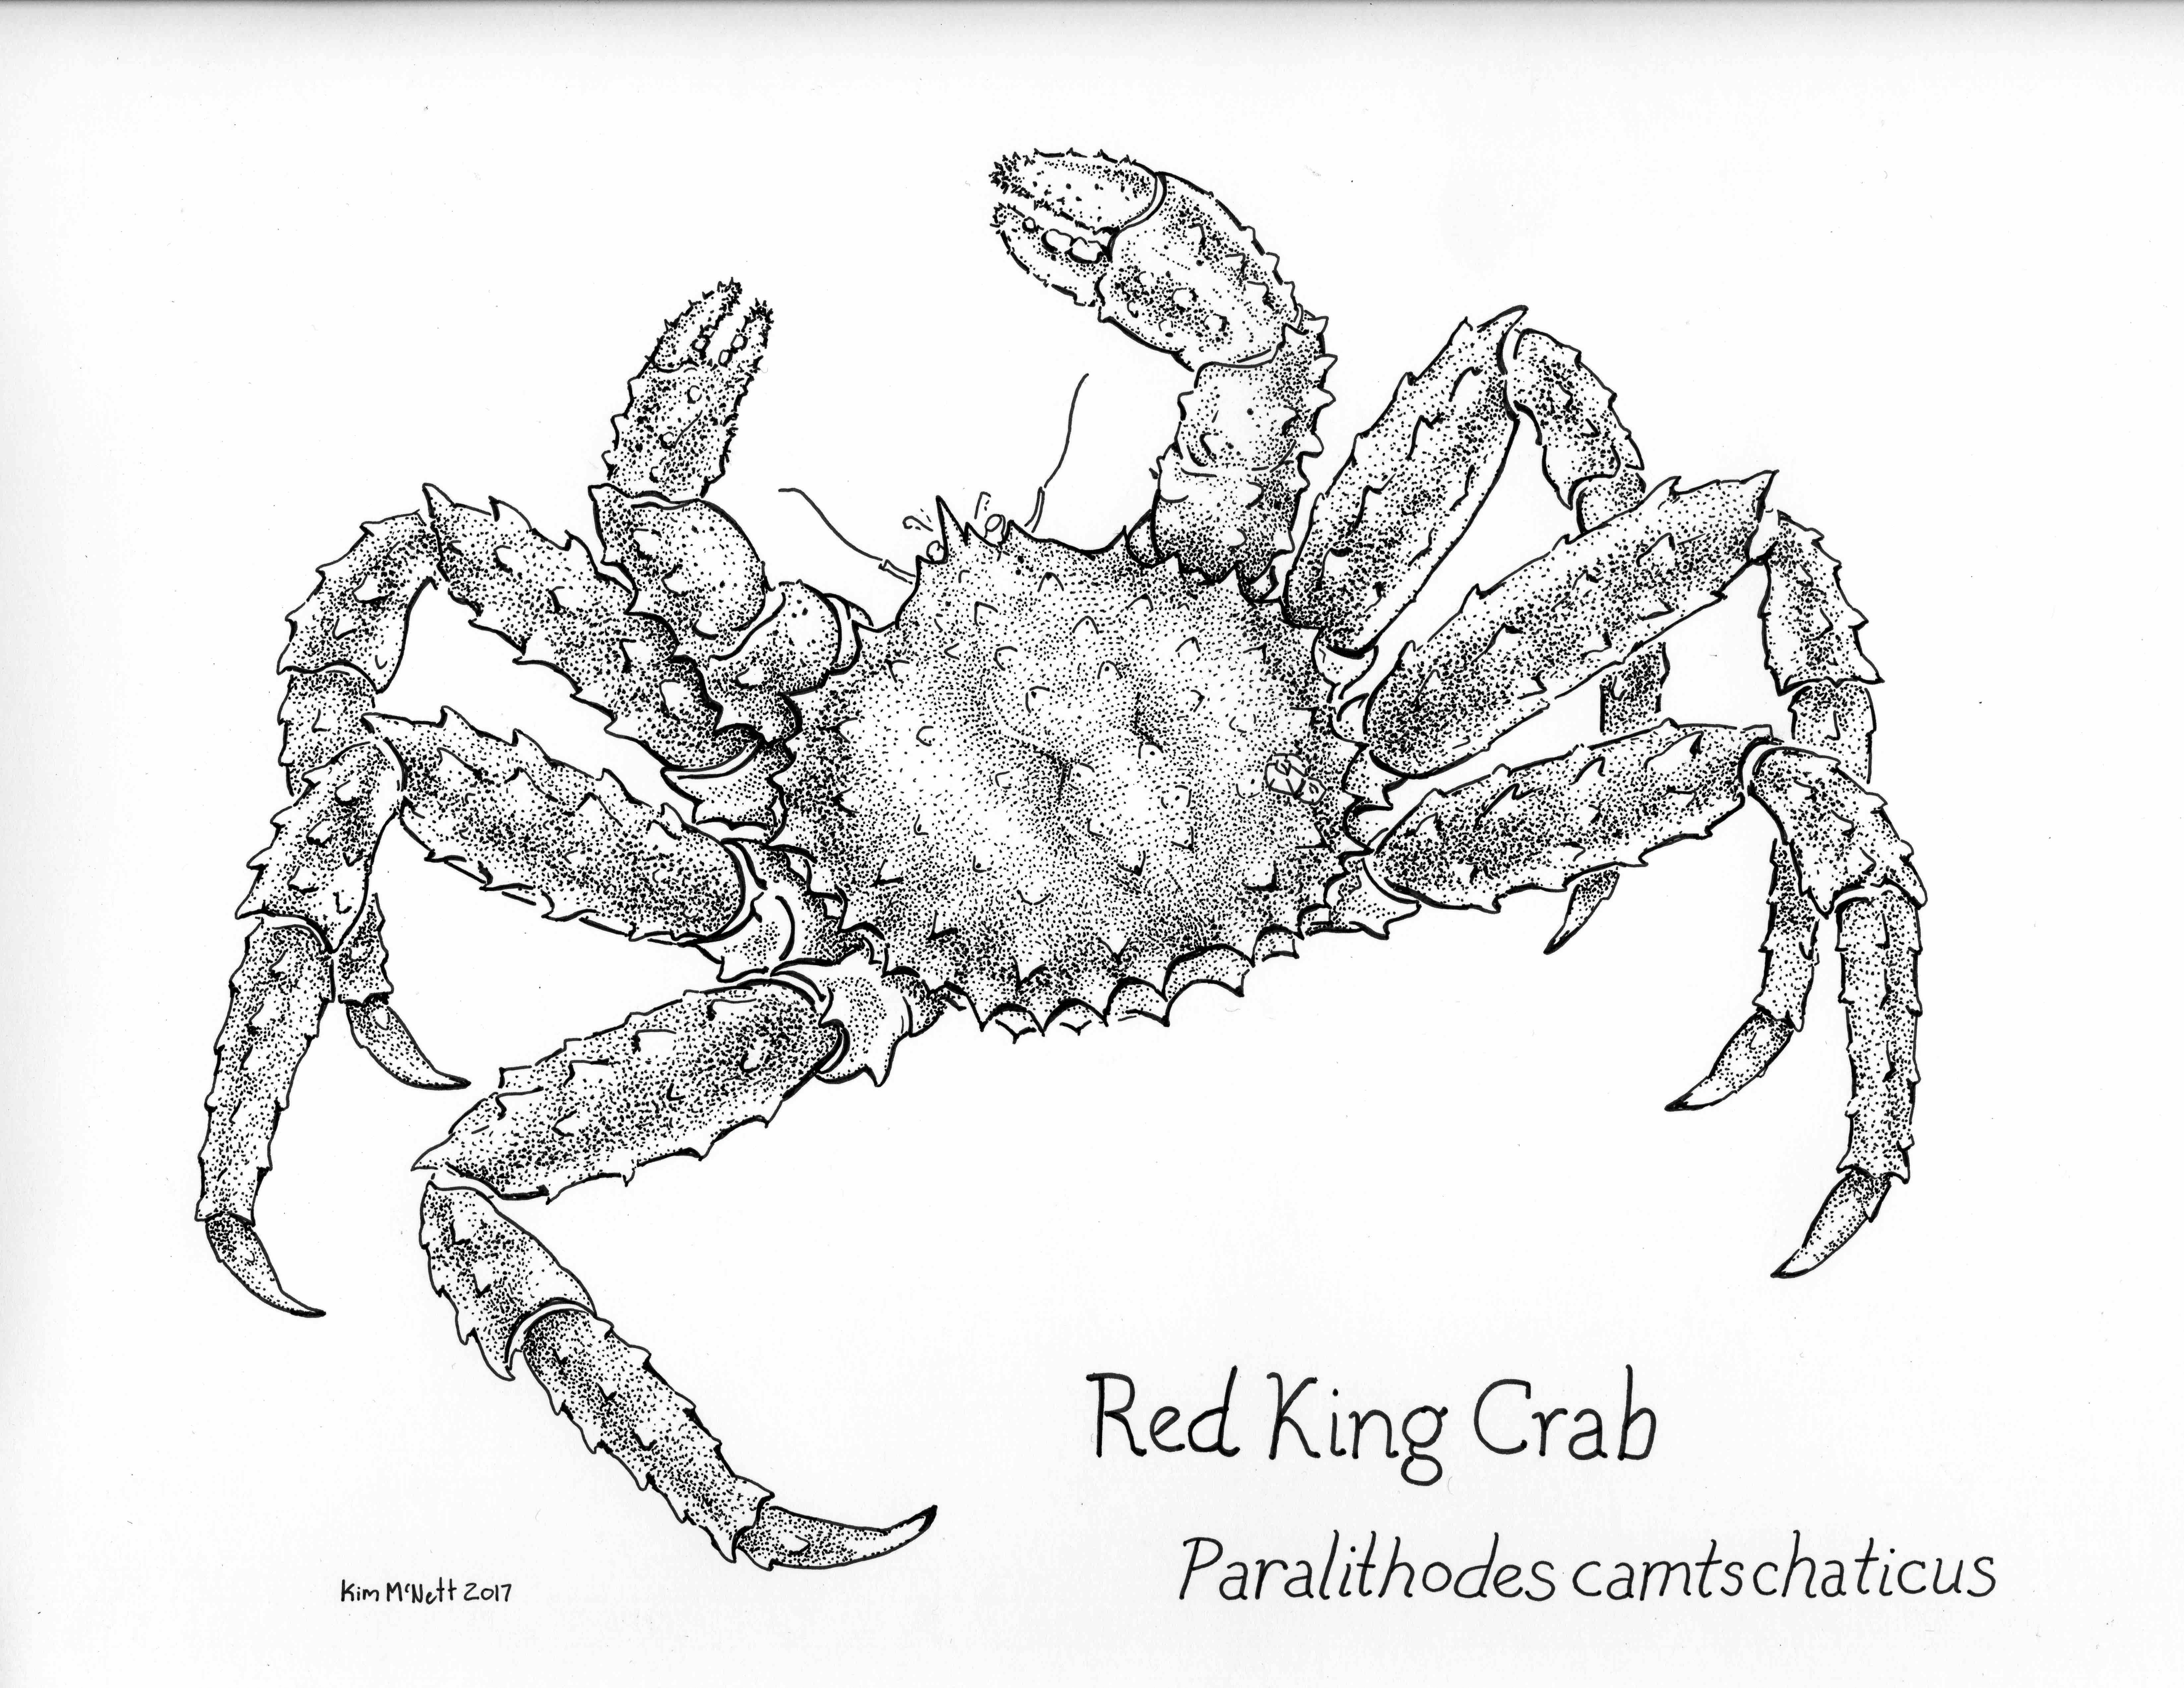 king crab, Red King Crab, Paralithodes camtschaticus, drawing, red king crab, Paralithodes, lithodid, crab, Bering Sea, Aleutian Islands, arthropod, decapod, illustration, scientific